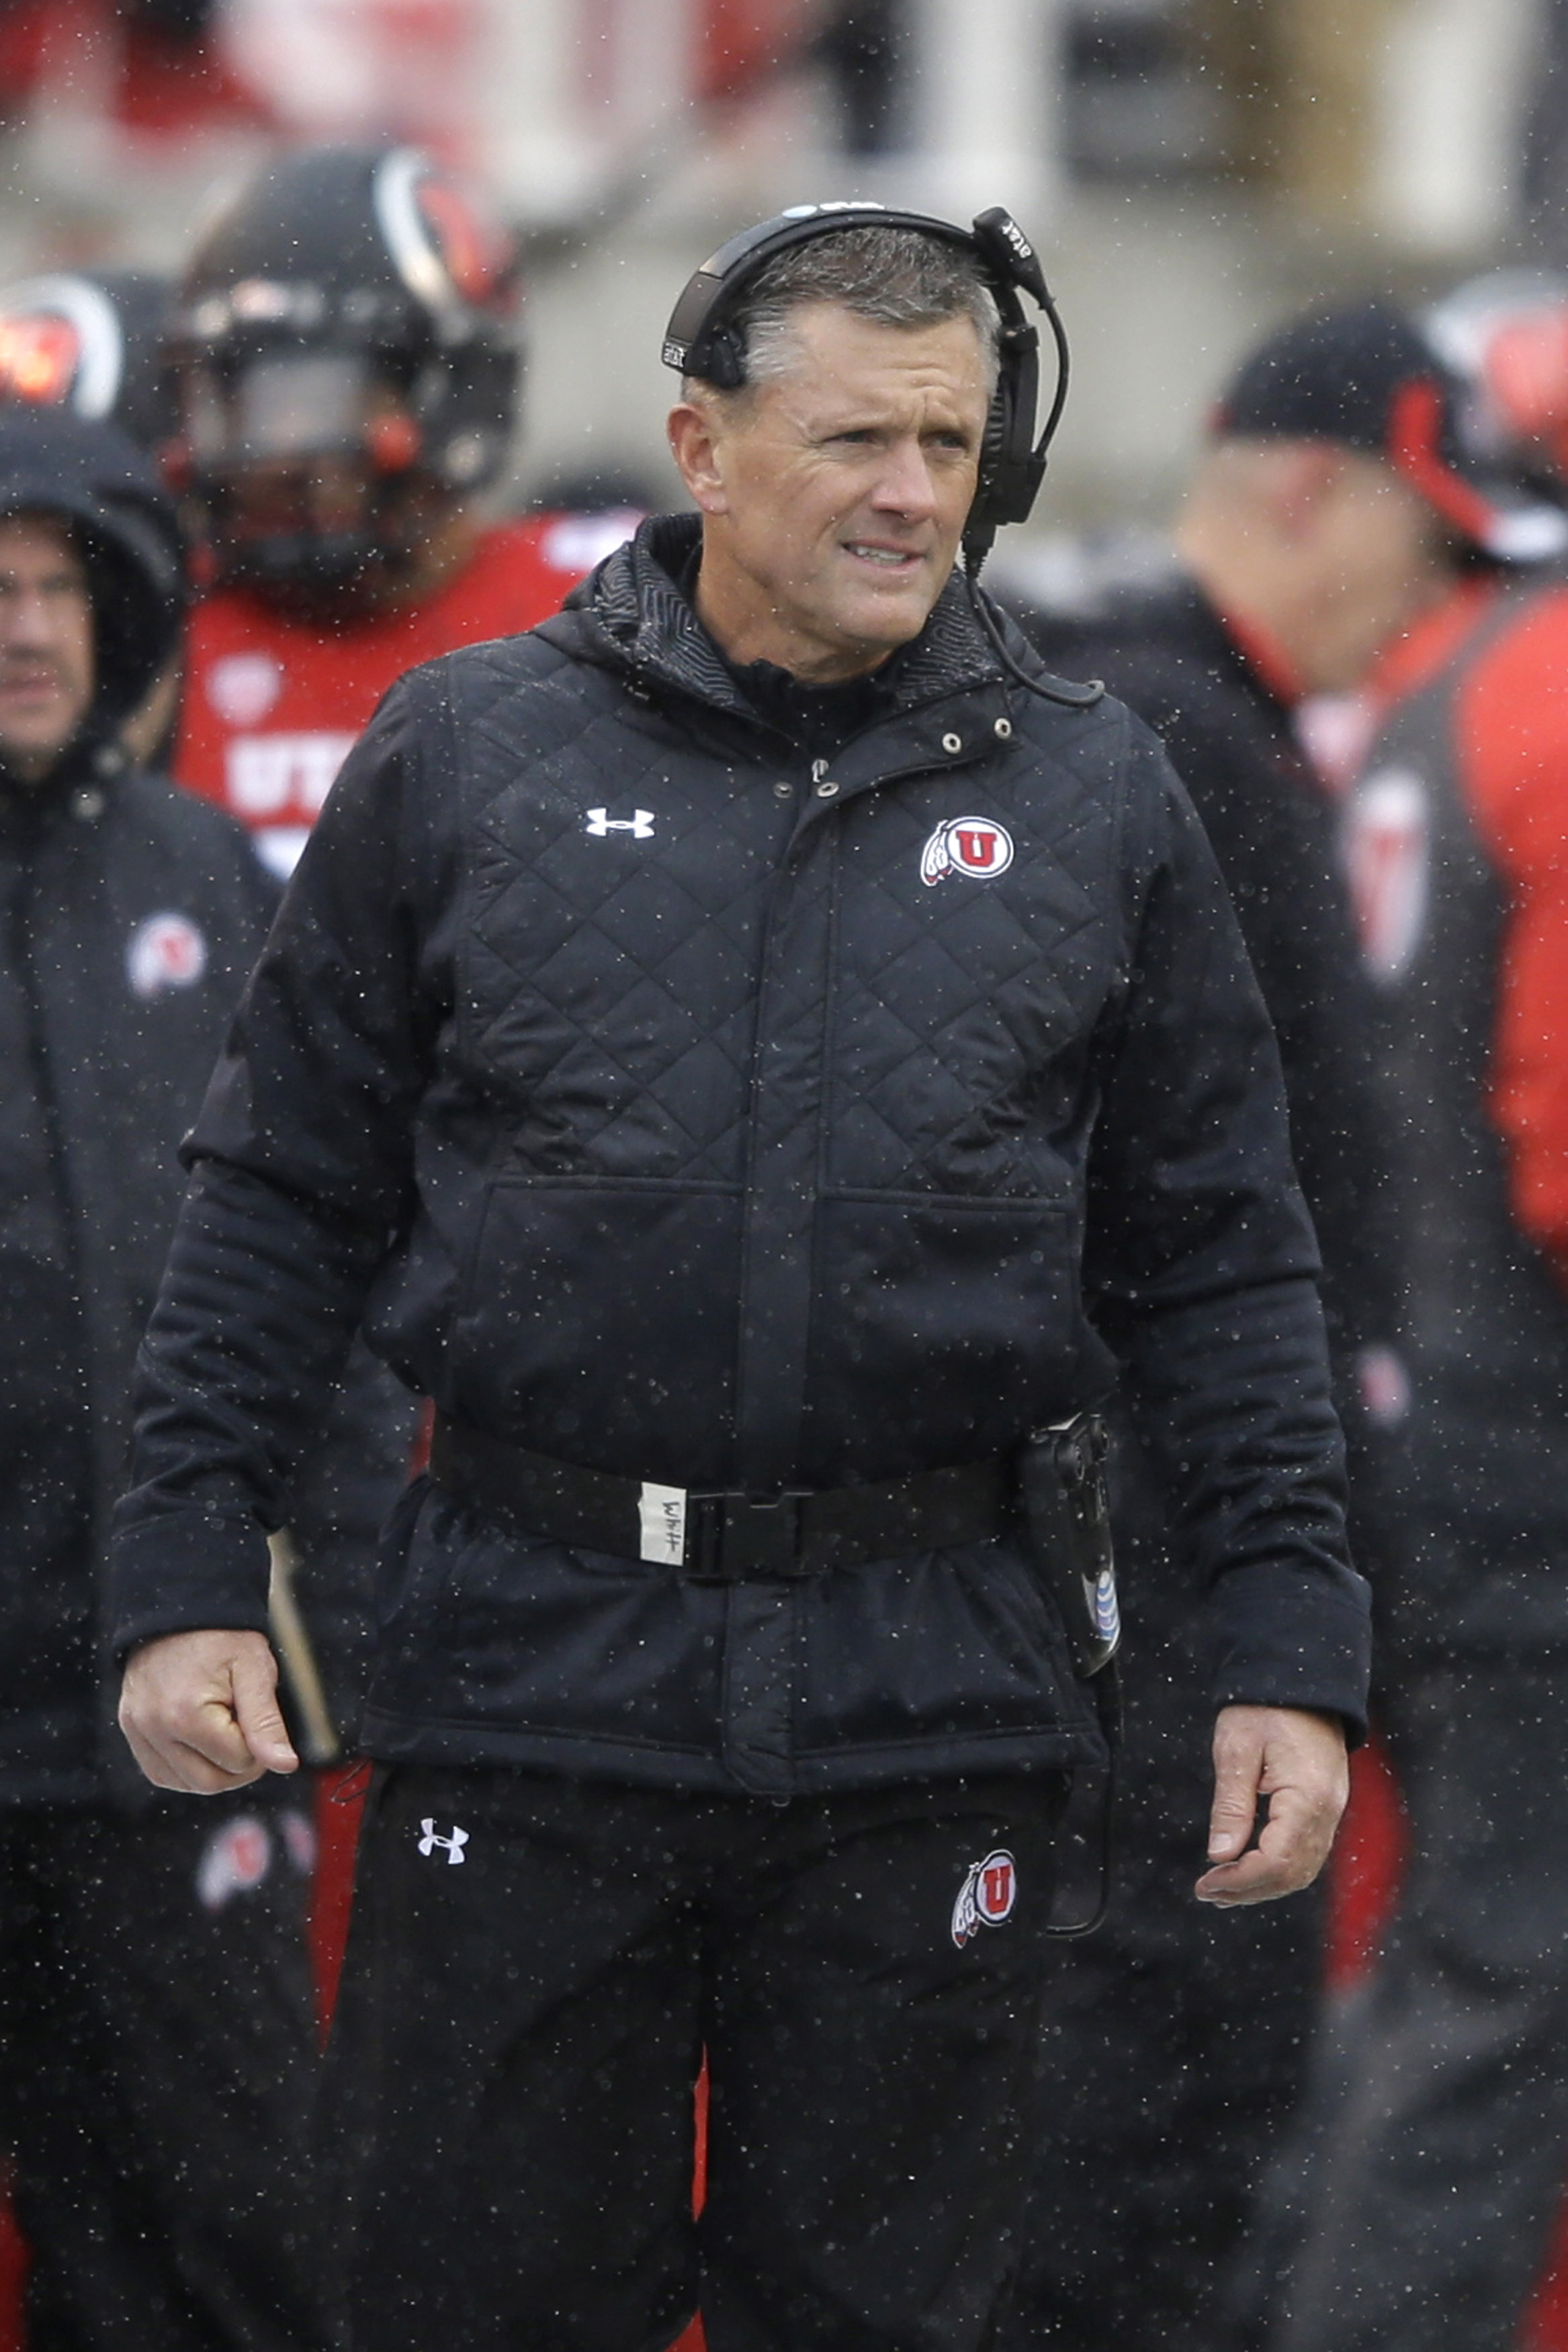 FILE - In this Nov. 28, 2015, file photo, Utah head coach Kyle Whittingham looks on in the second half during an NCAA college football game against Colorado, in Salt Lake City. Utah plays BYU in the Las Vegas Bowl on Saturday. (AP Photo/Rick Bowmer, File)